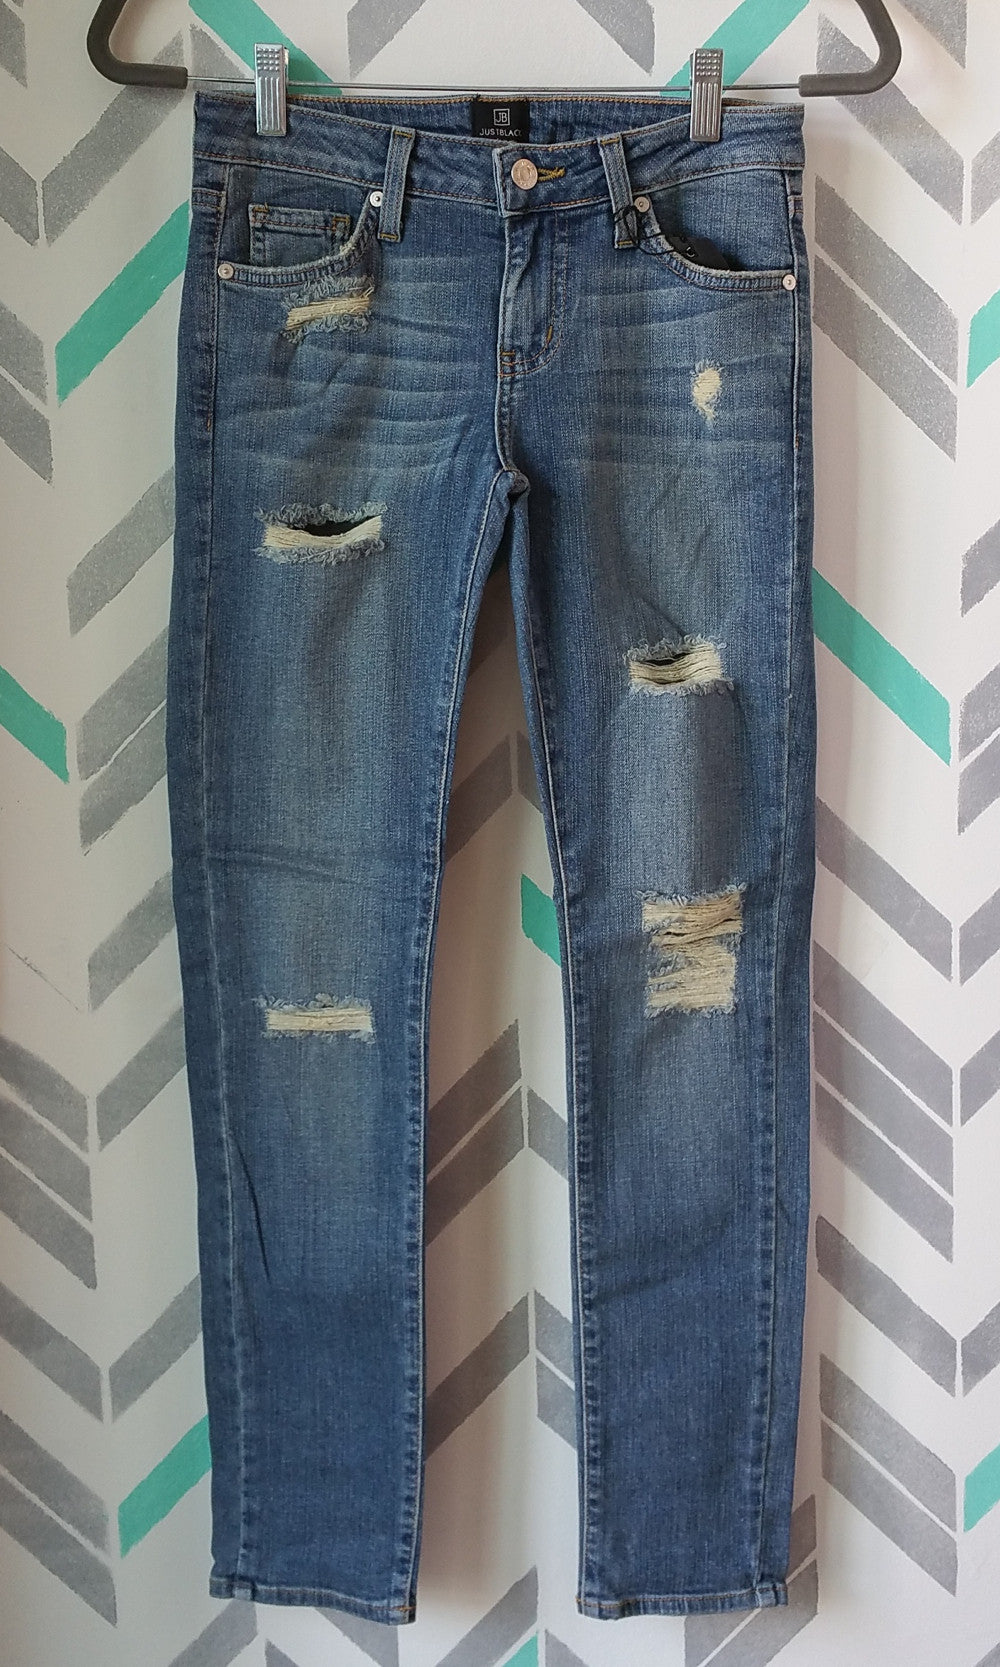 Distressed Ankle Length Skinny Jeans - Medium Wash